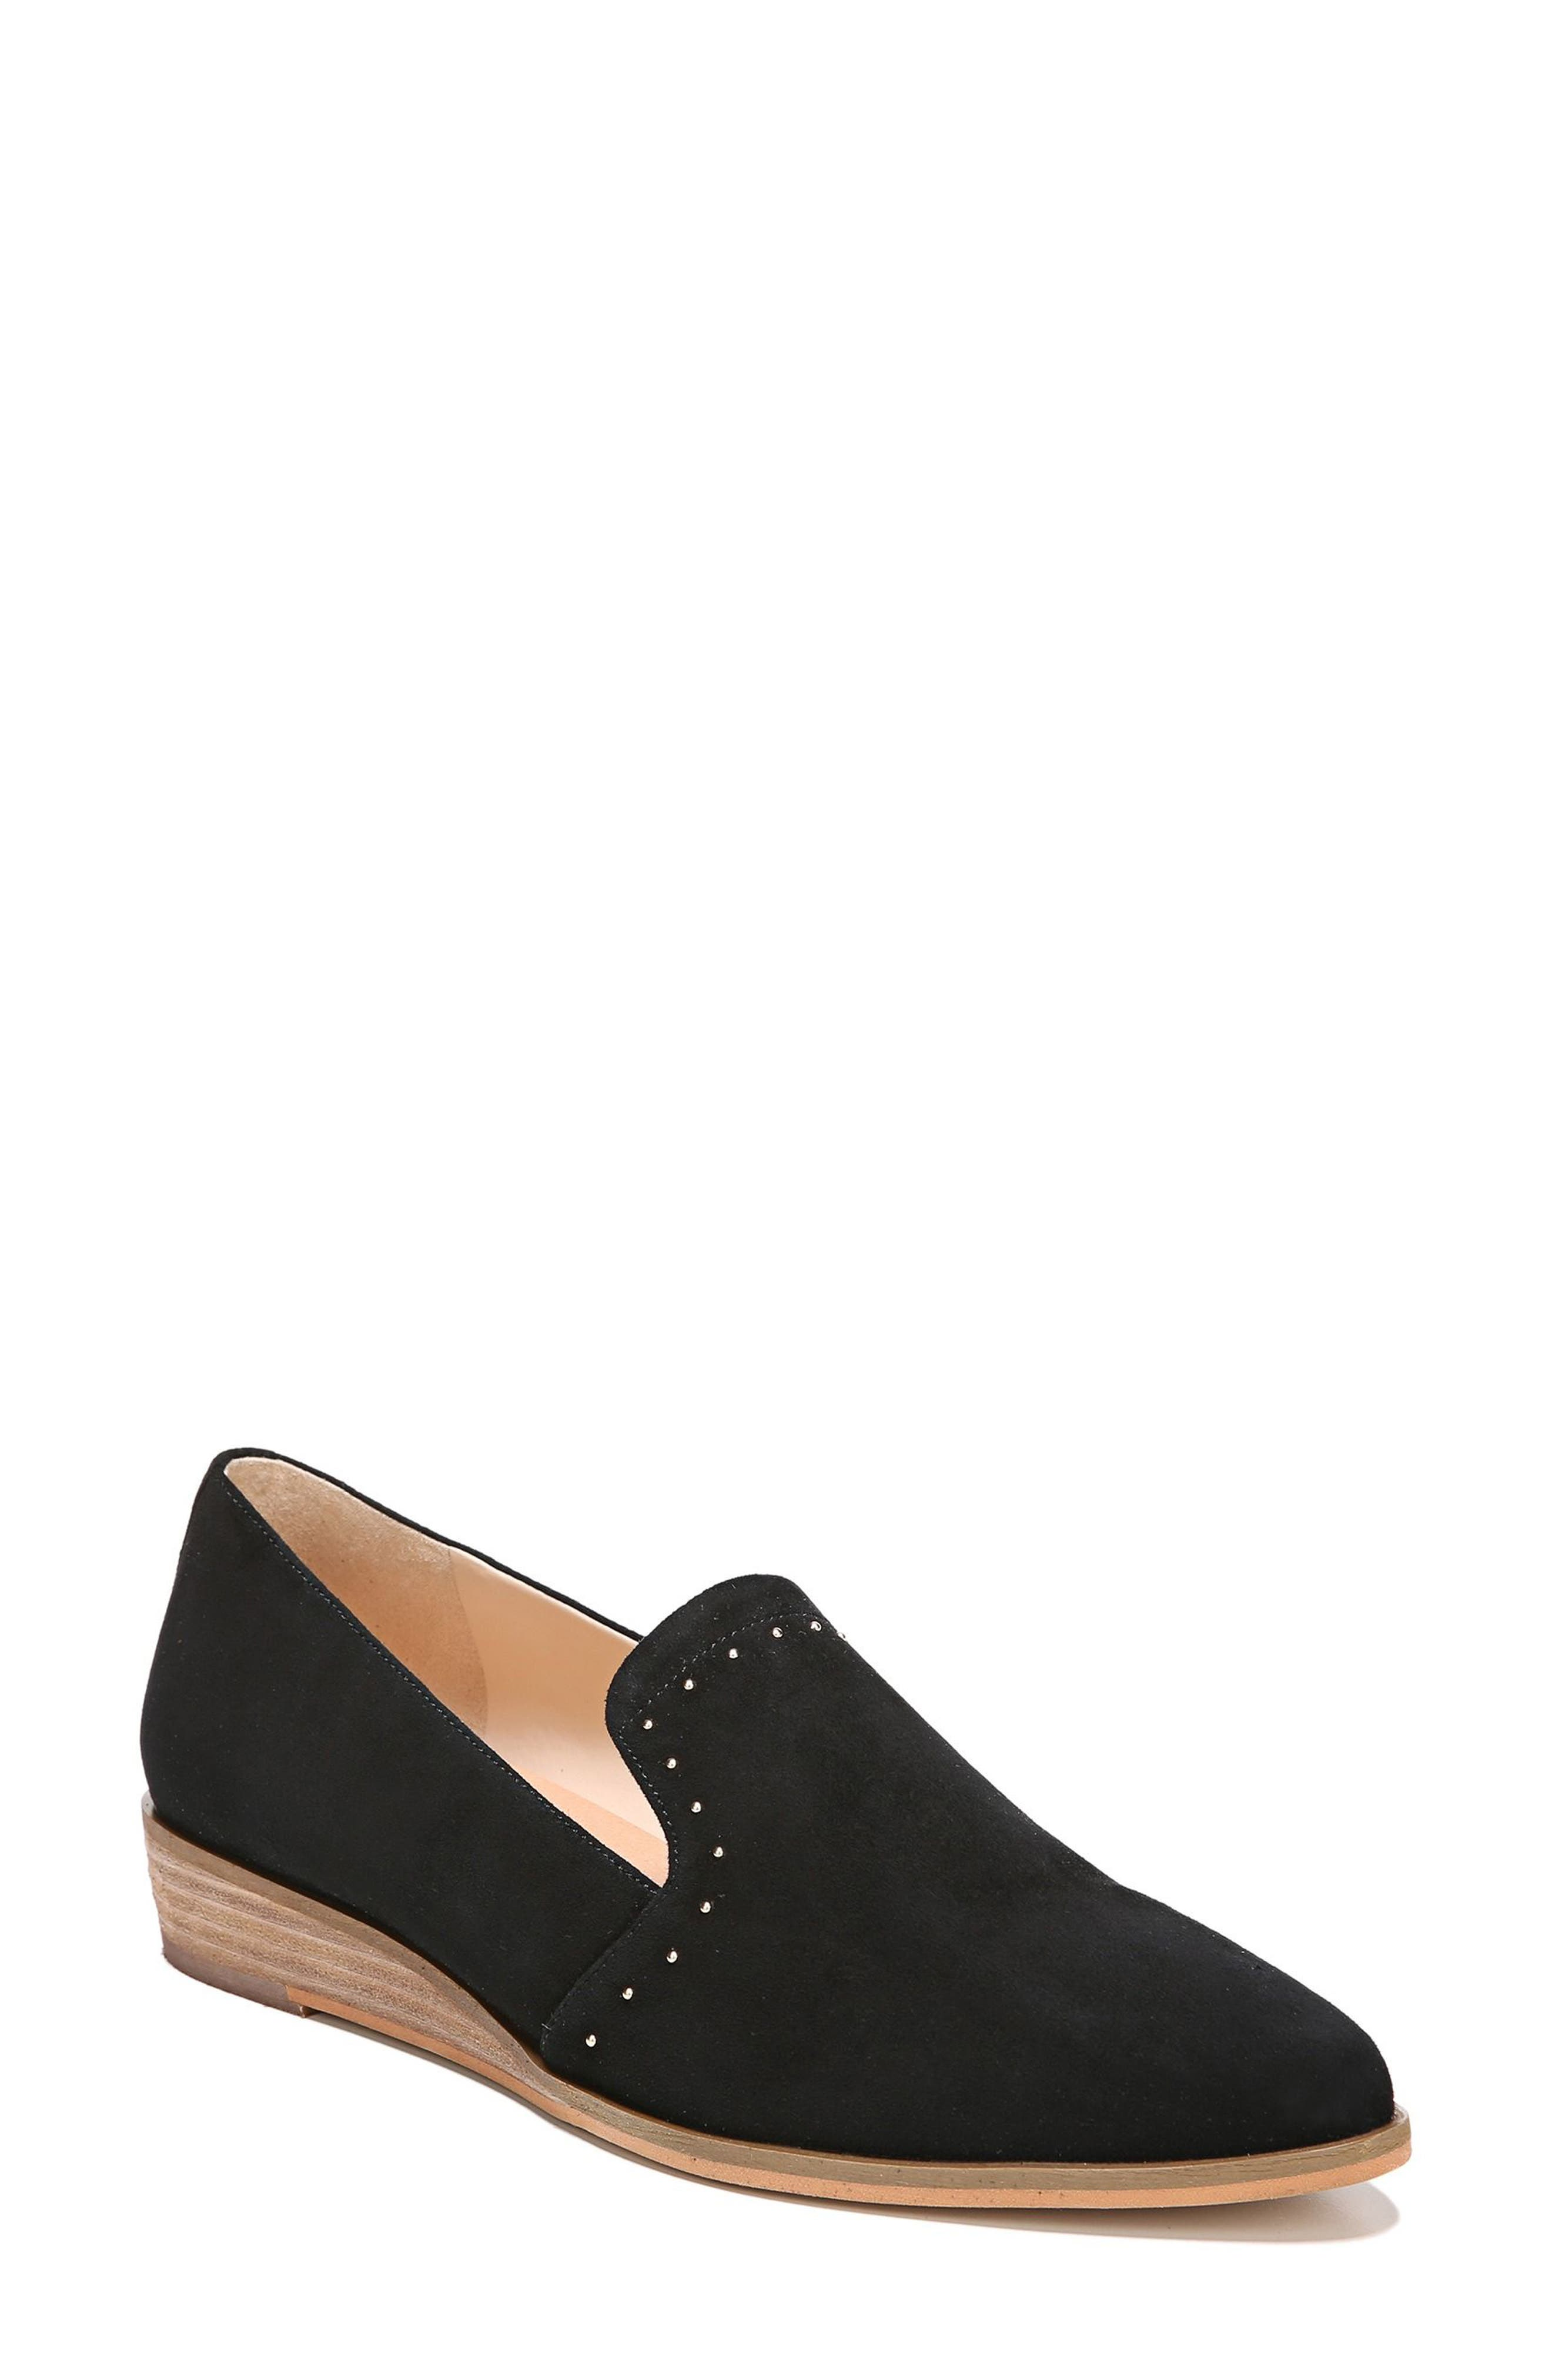 Main Image - Dr. Scholl's Keane Loafer Wedge (Women)